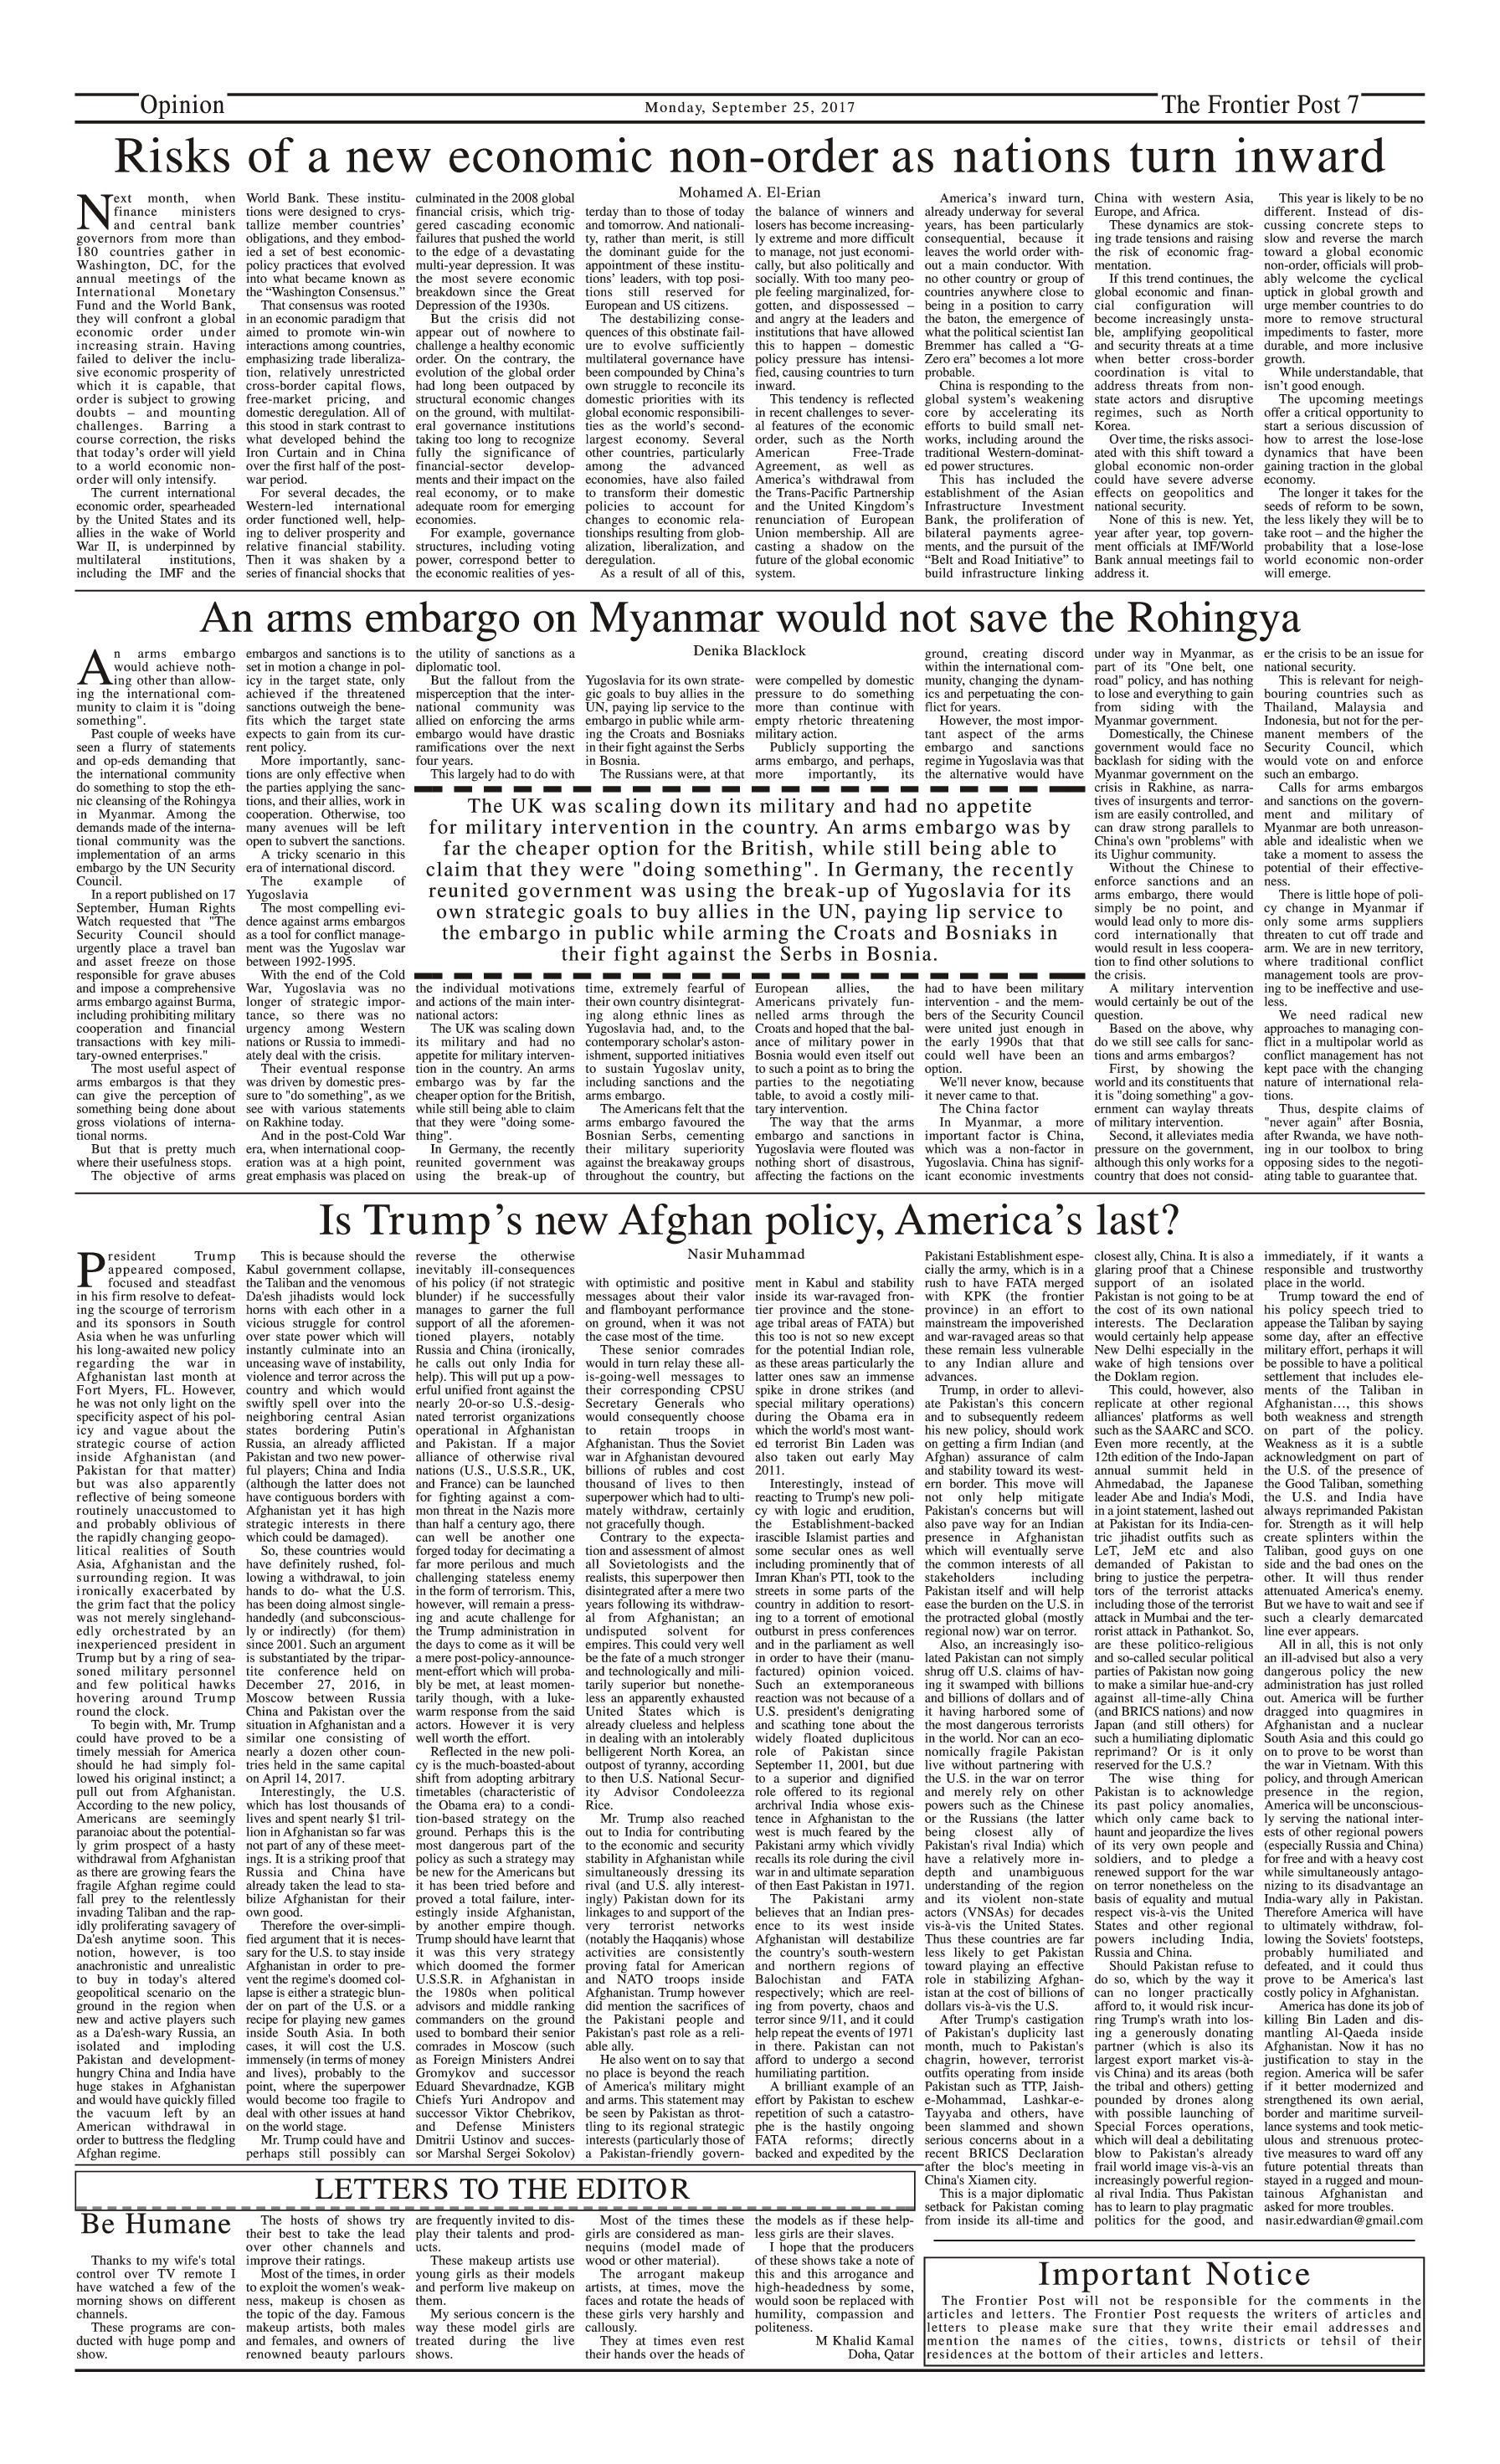 Opinion Page 25-09